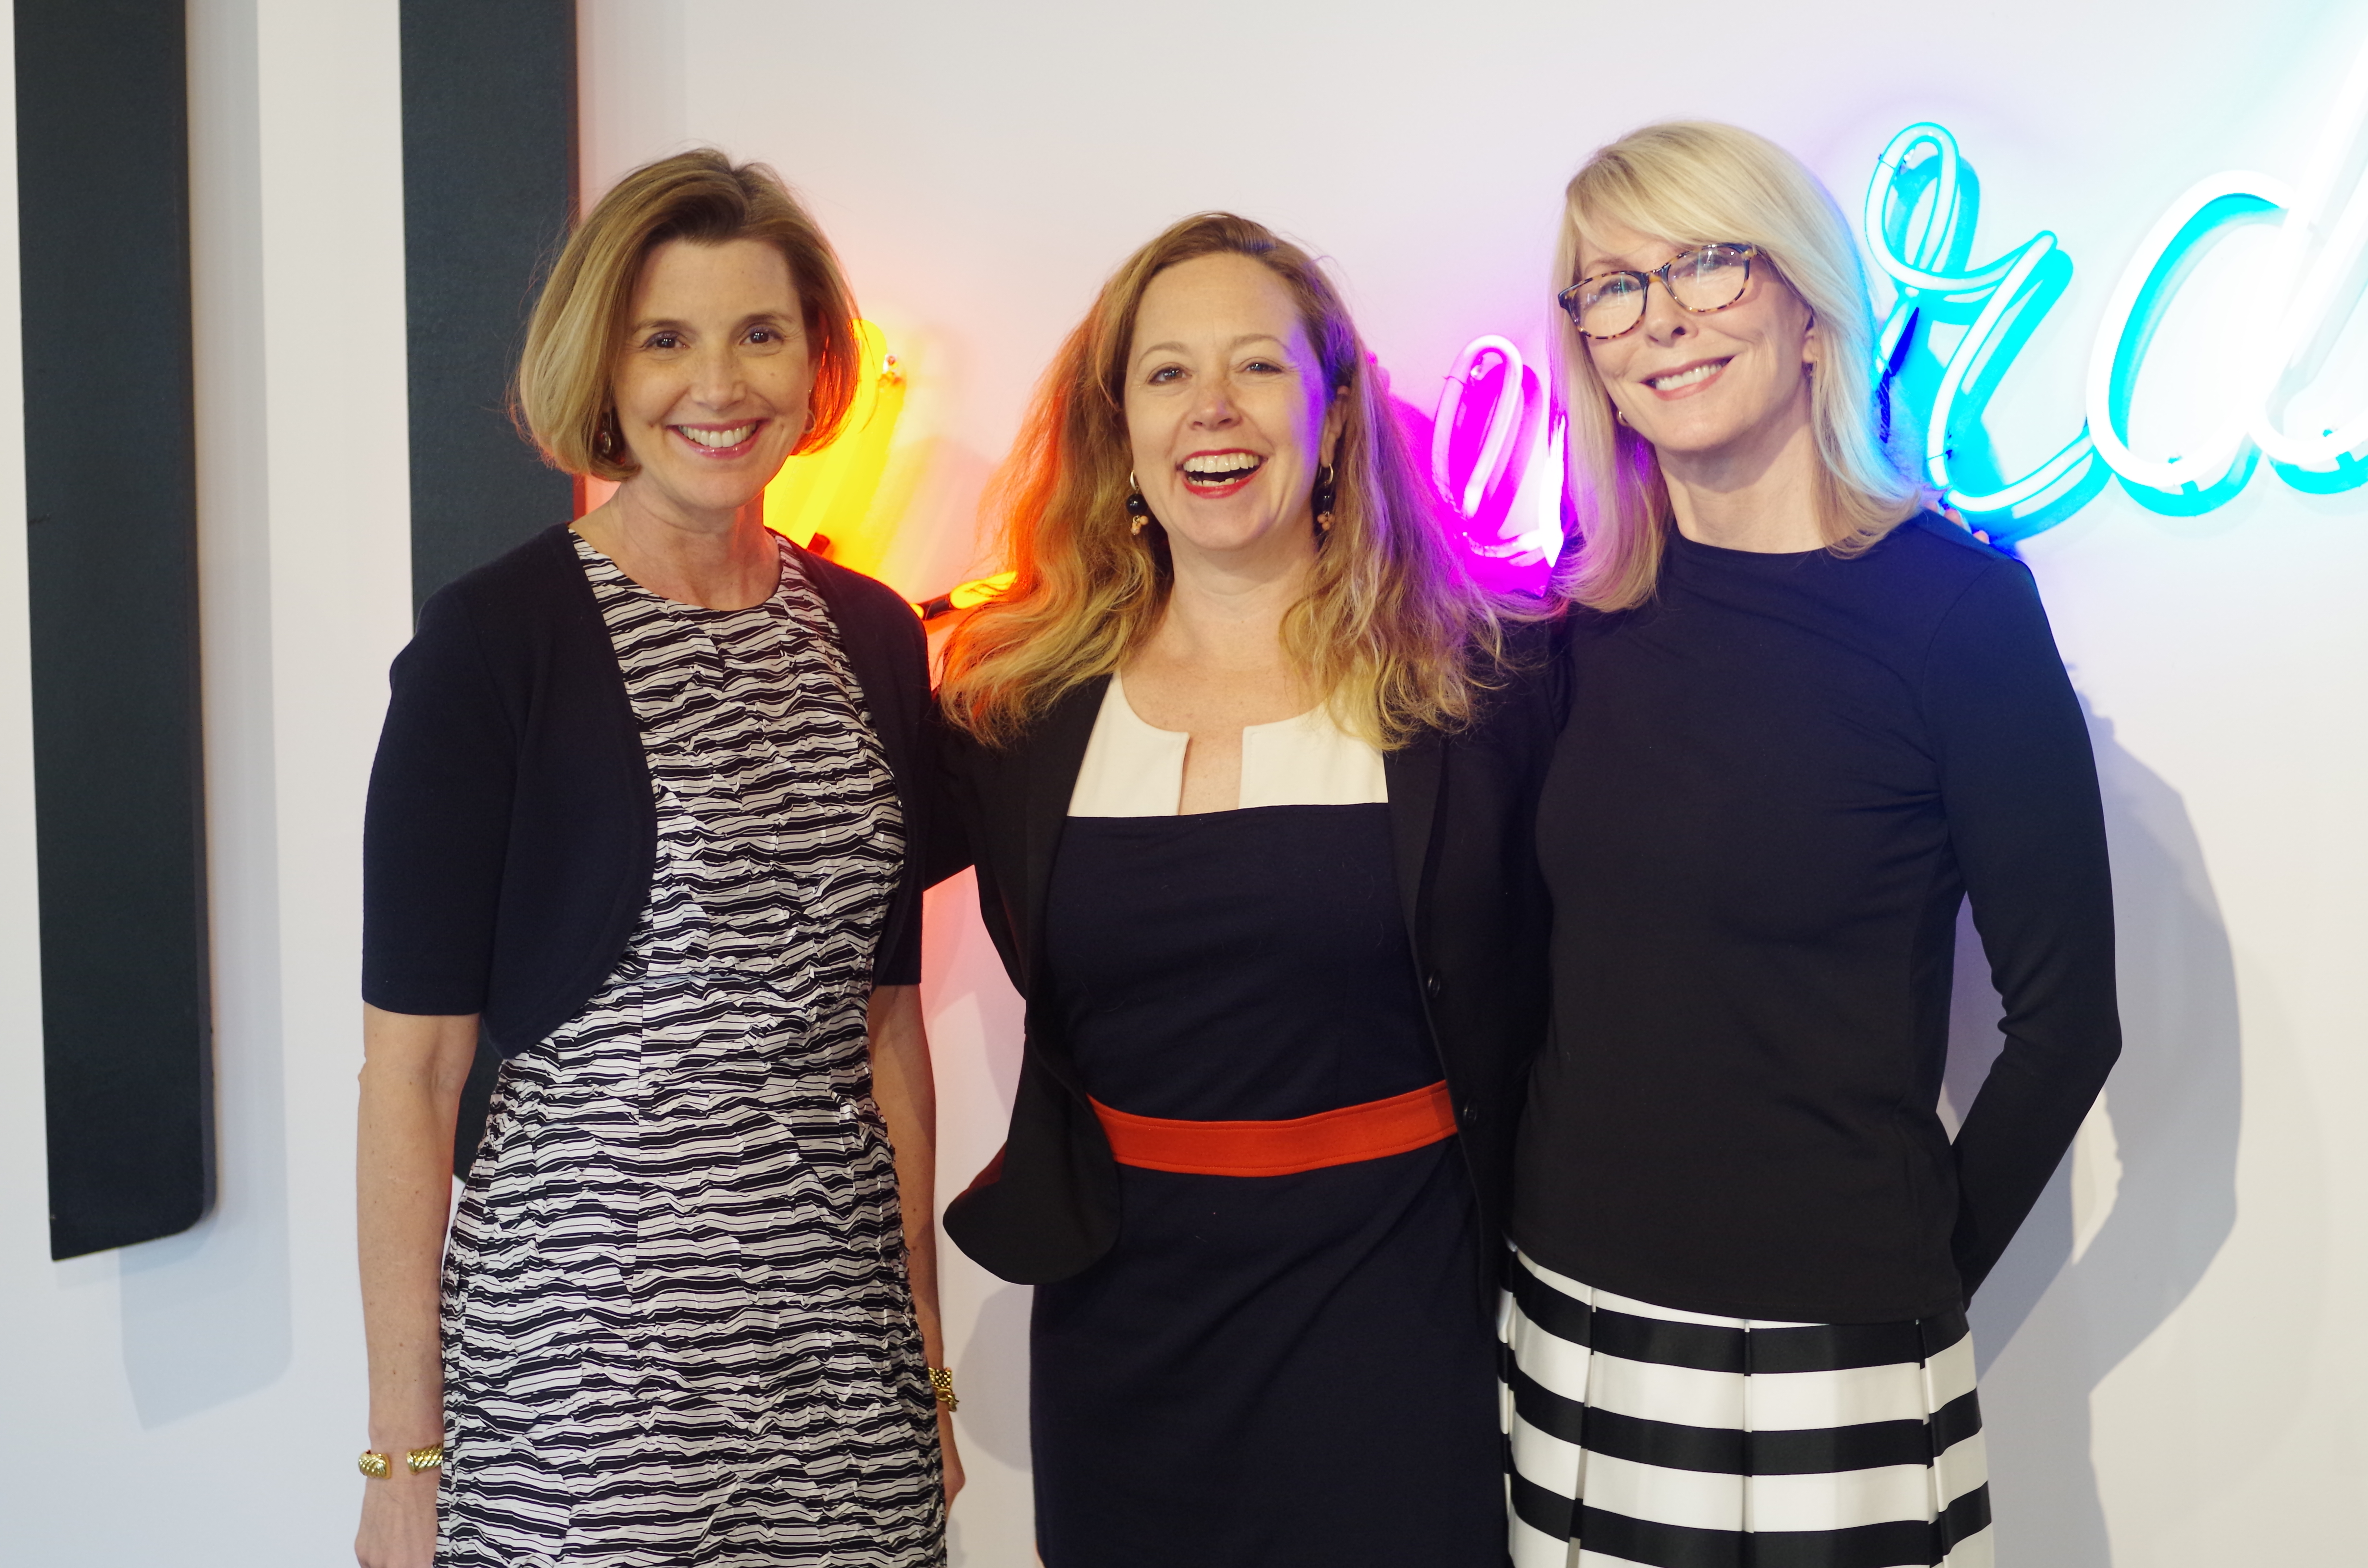 Sallie Krawcheck, Jennifer Reingold, and Susan Lyne at STORY, March, 2016